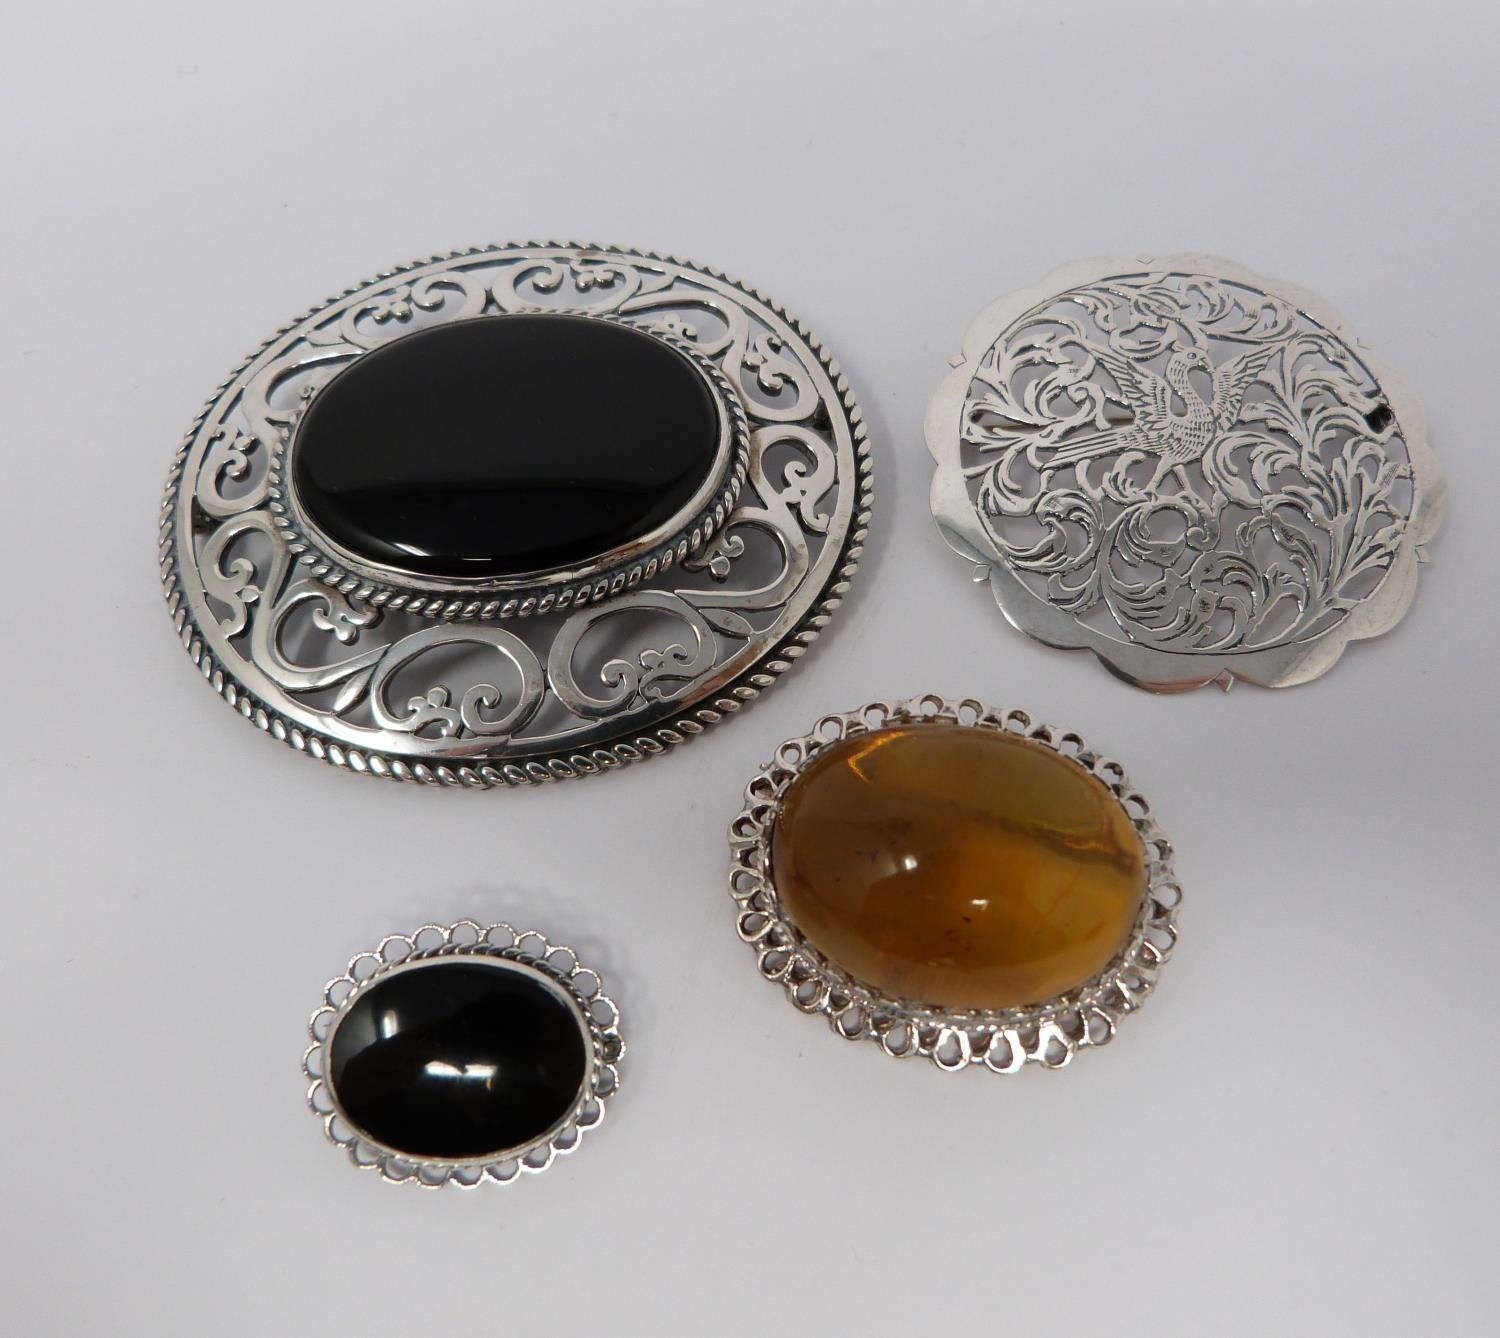 Large jet and hallmarked silver pierced brooch, with a pierced white metal brooch, small silver